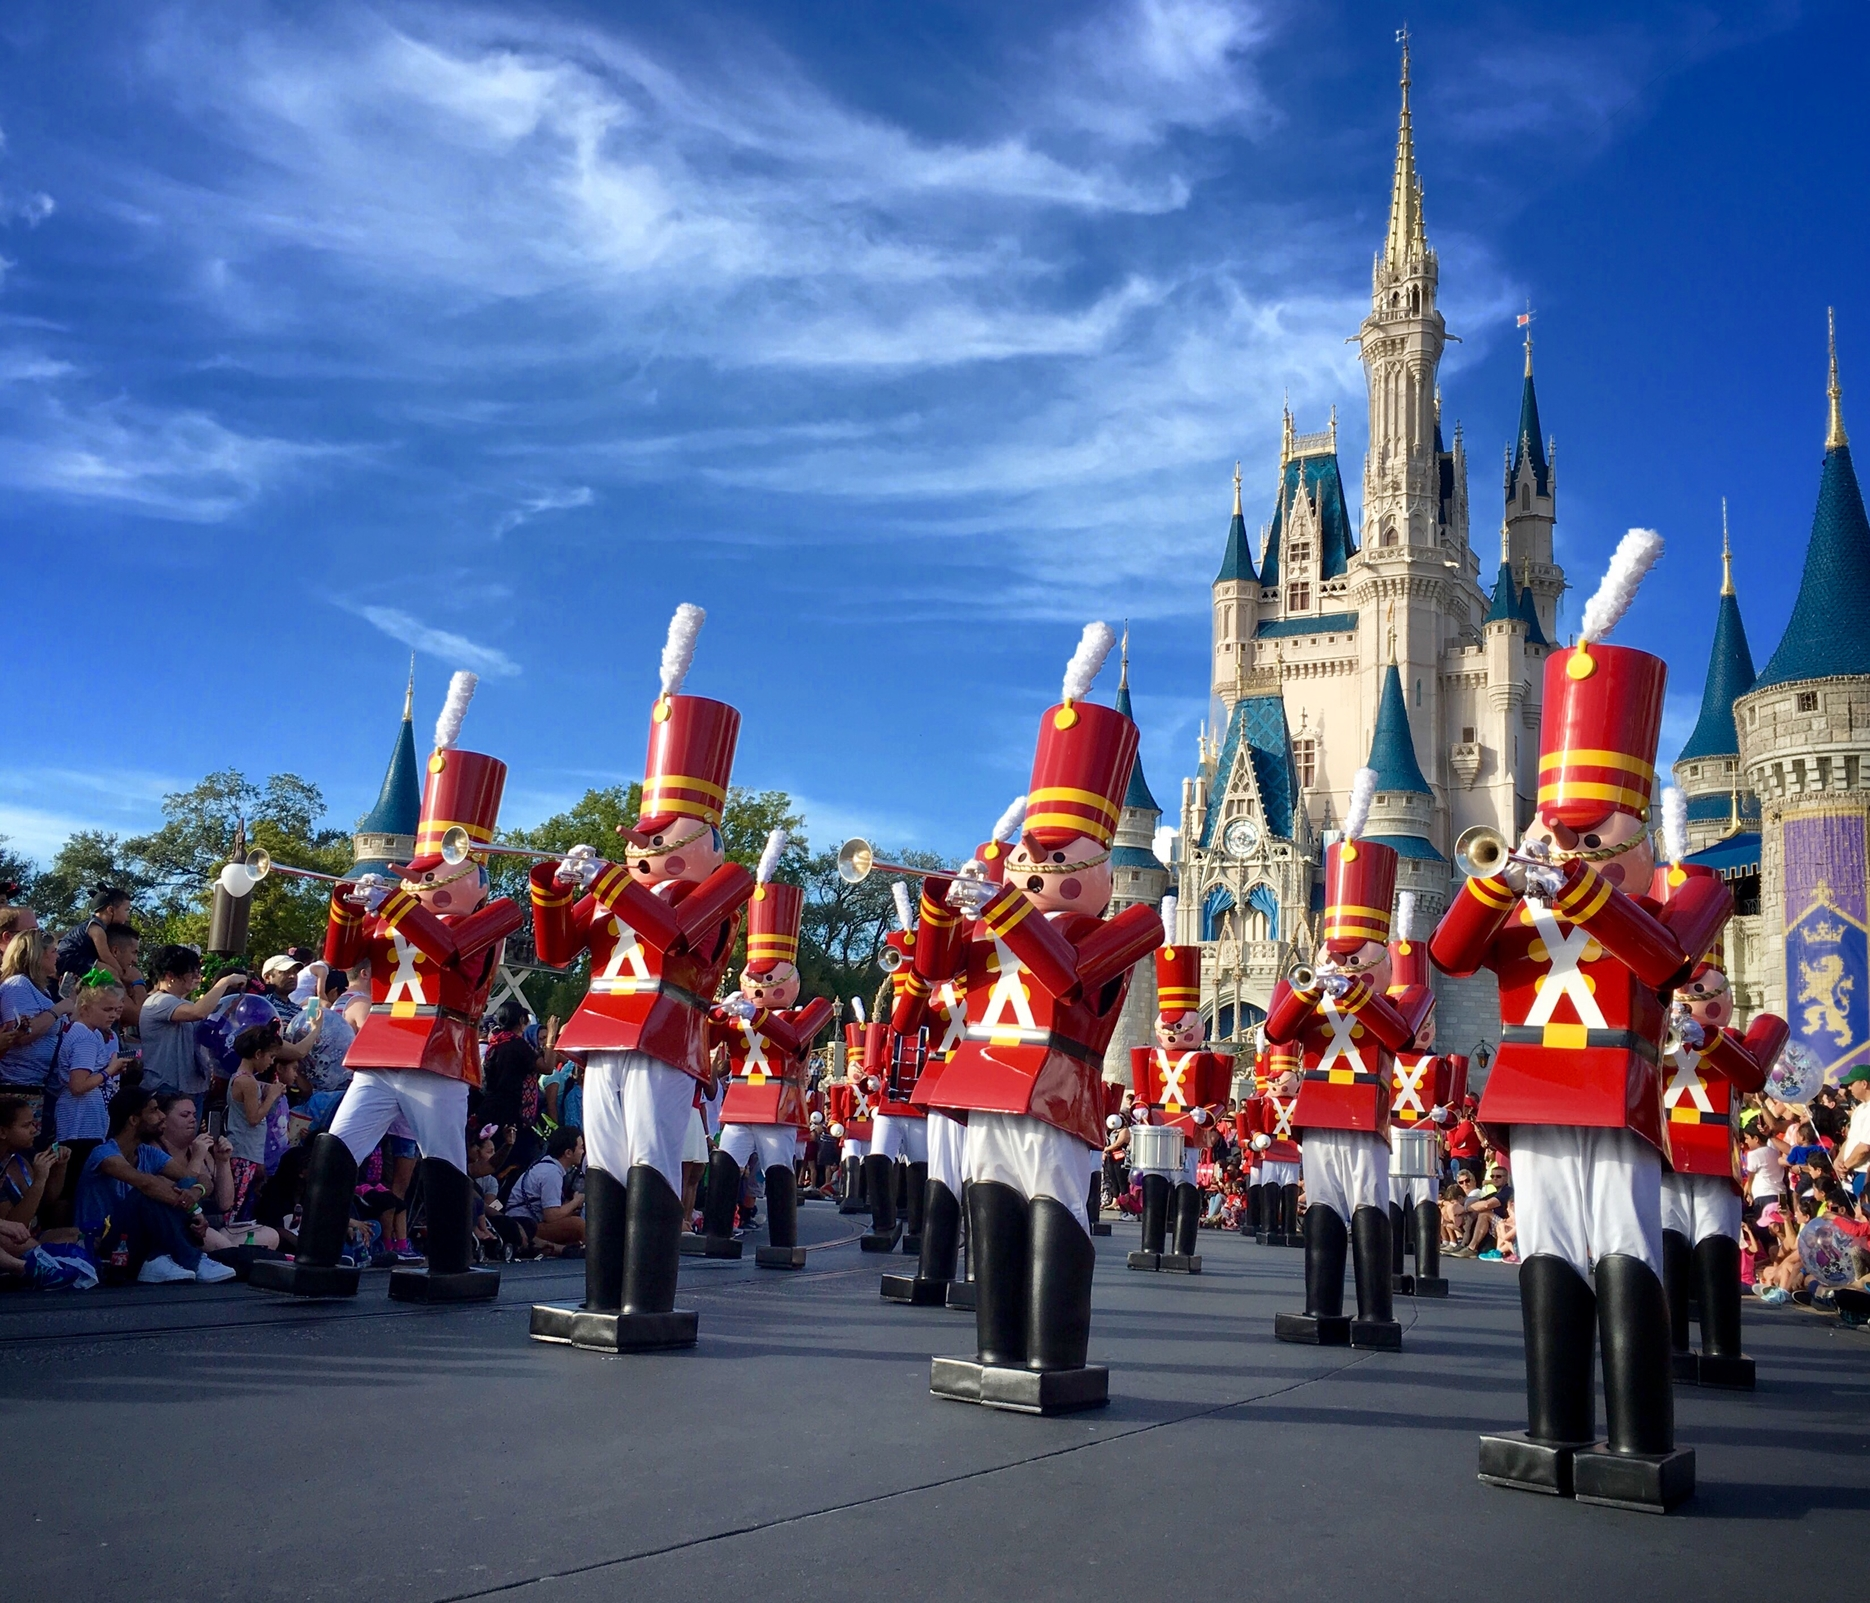 Disney Christmas Special 2021 Reviews 2021 Mickey S Very Merry Christmas Party Guide Best Dates And More